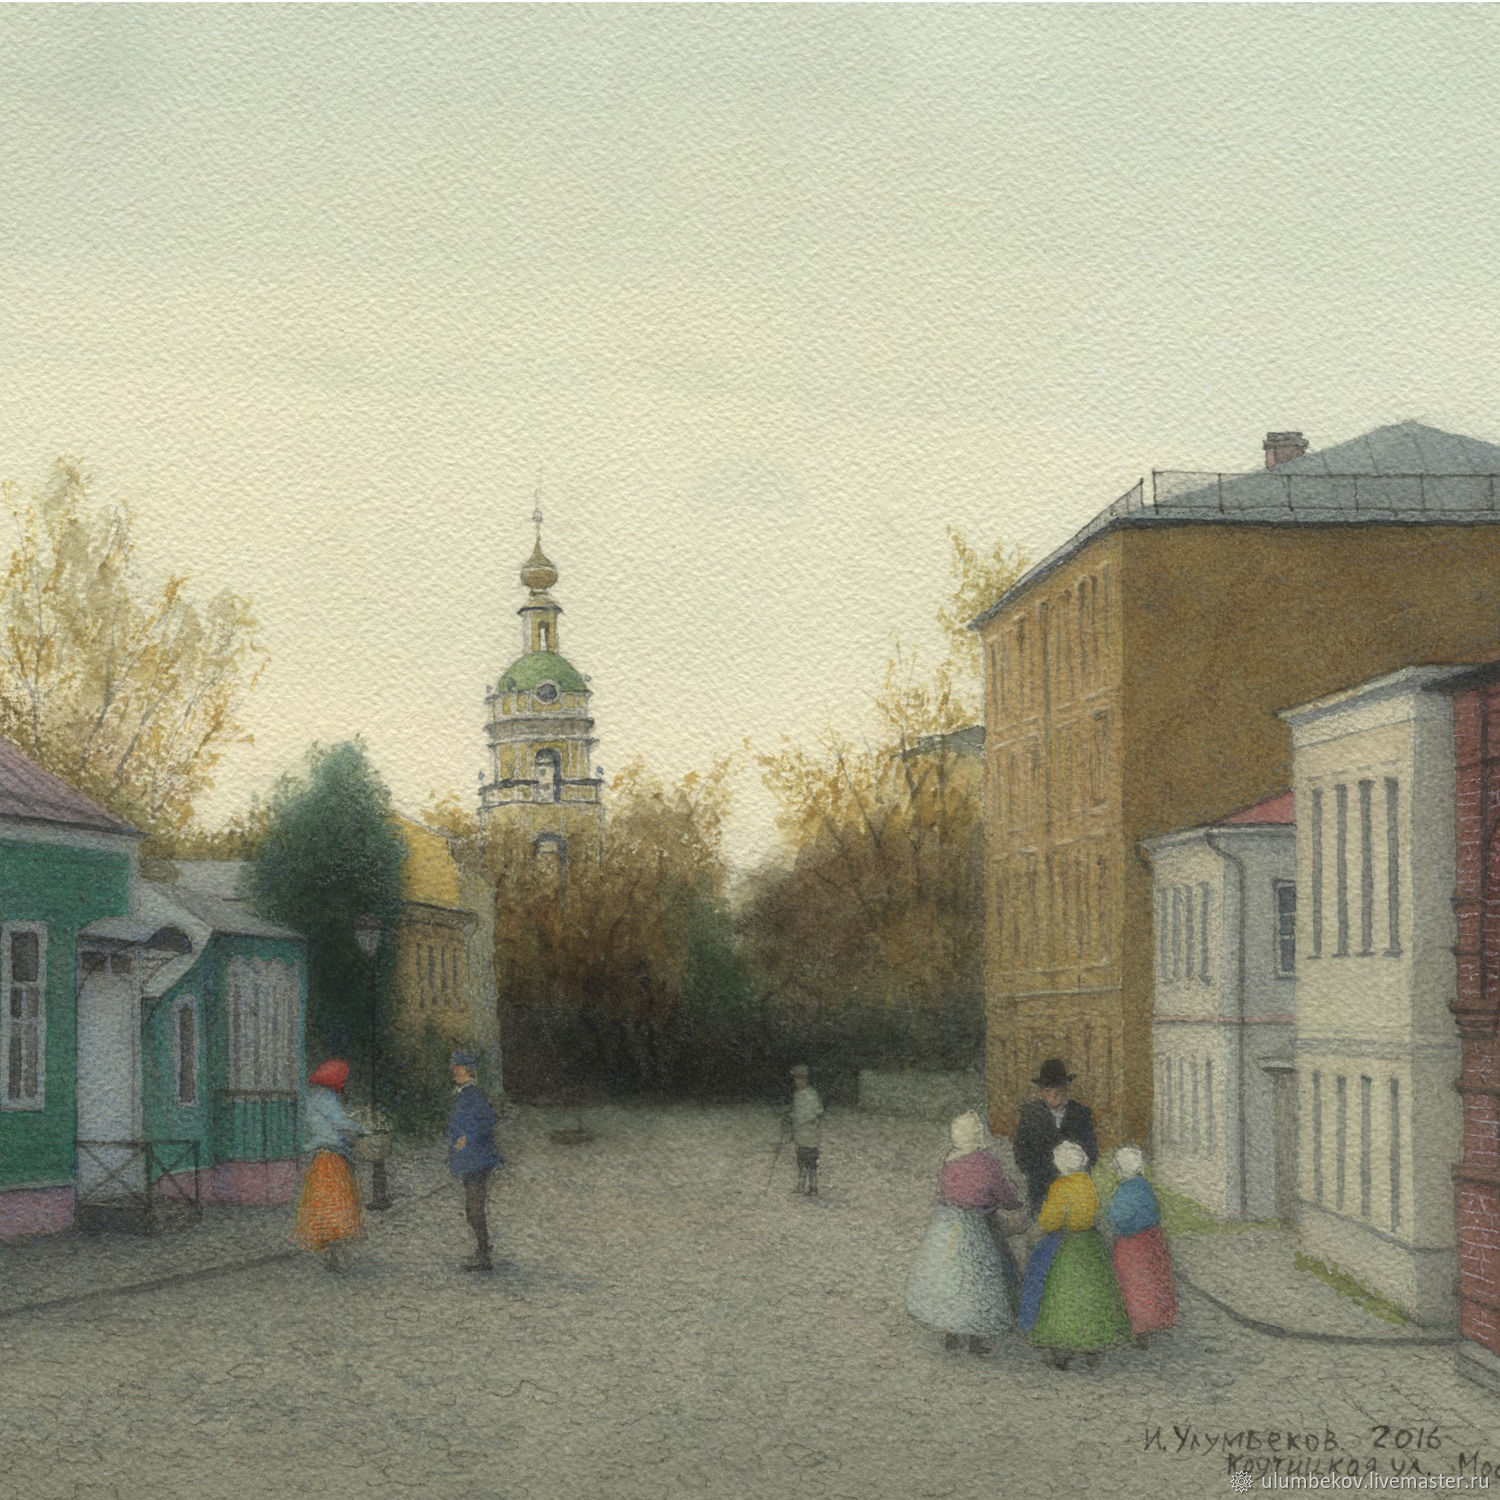 Paintings posters to buy on canvas Moscow Krutitskaya street, Pictures, Moscow,  Фото №1